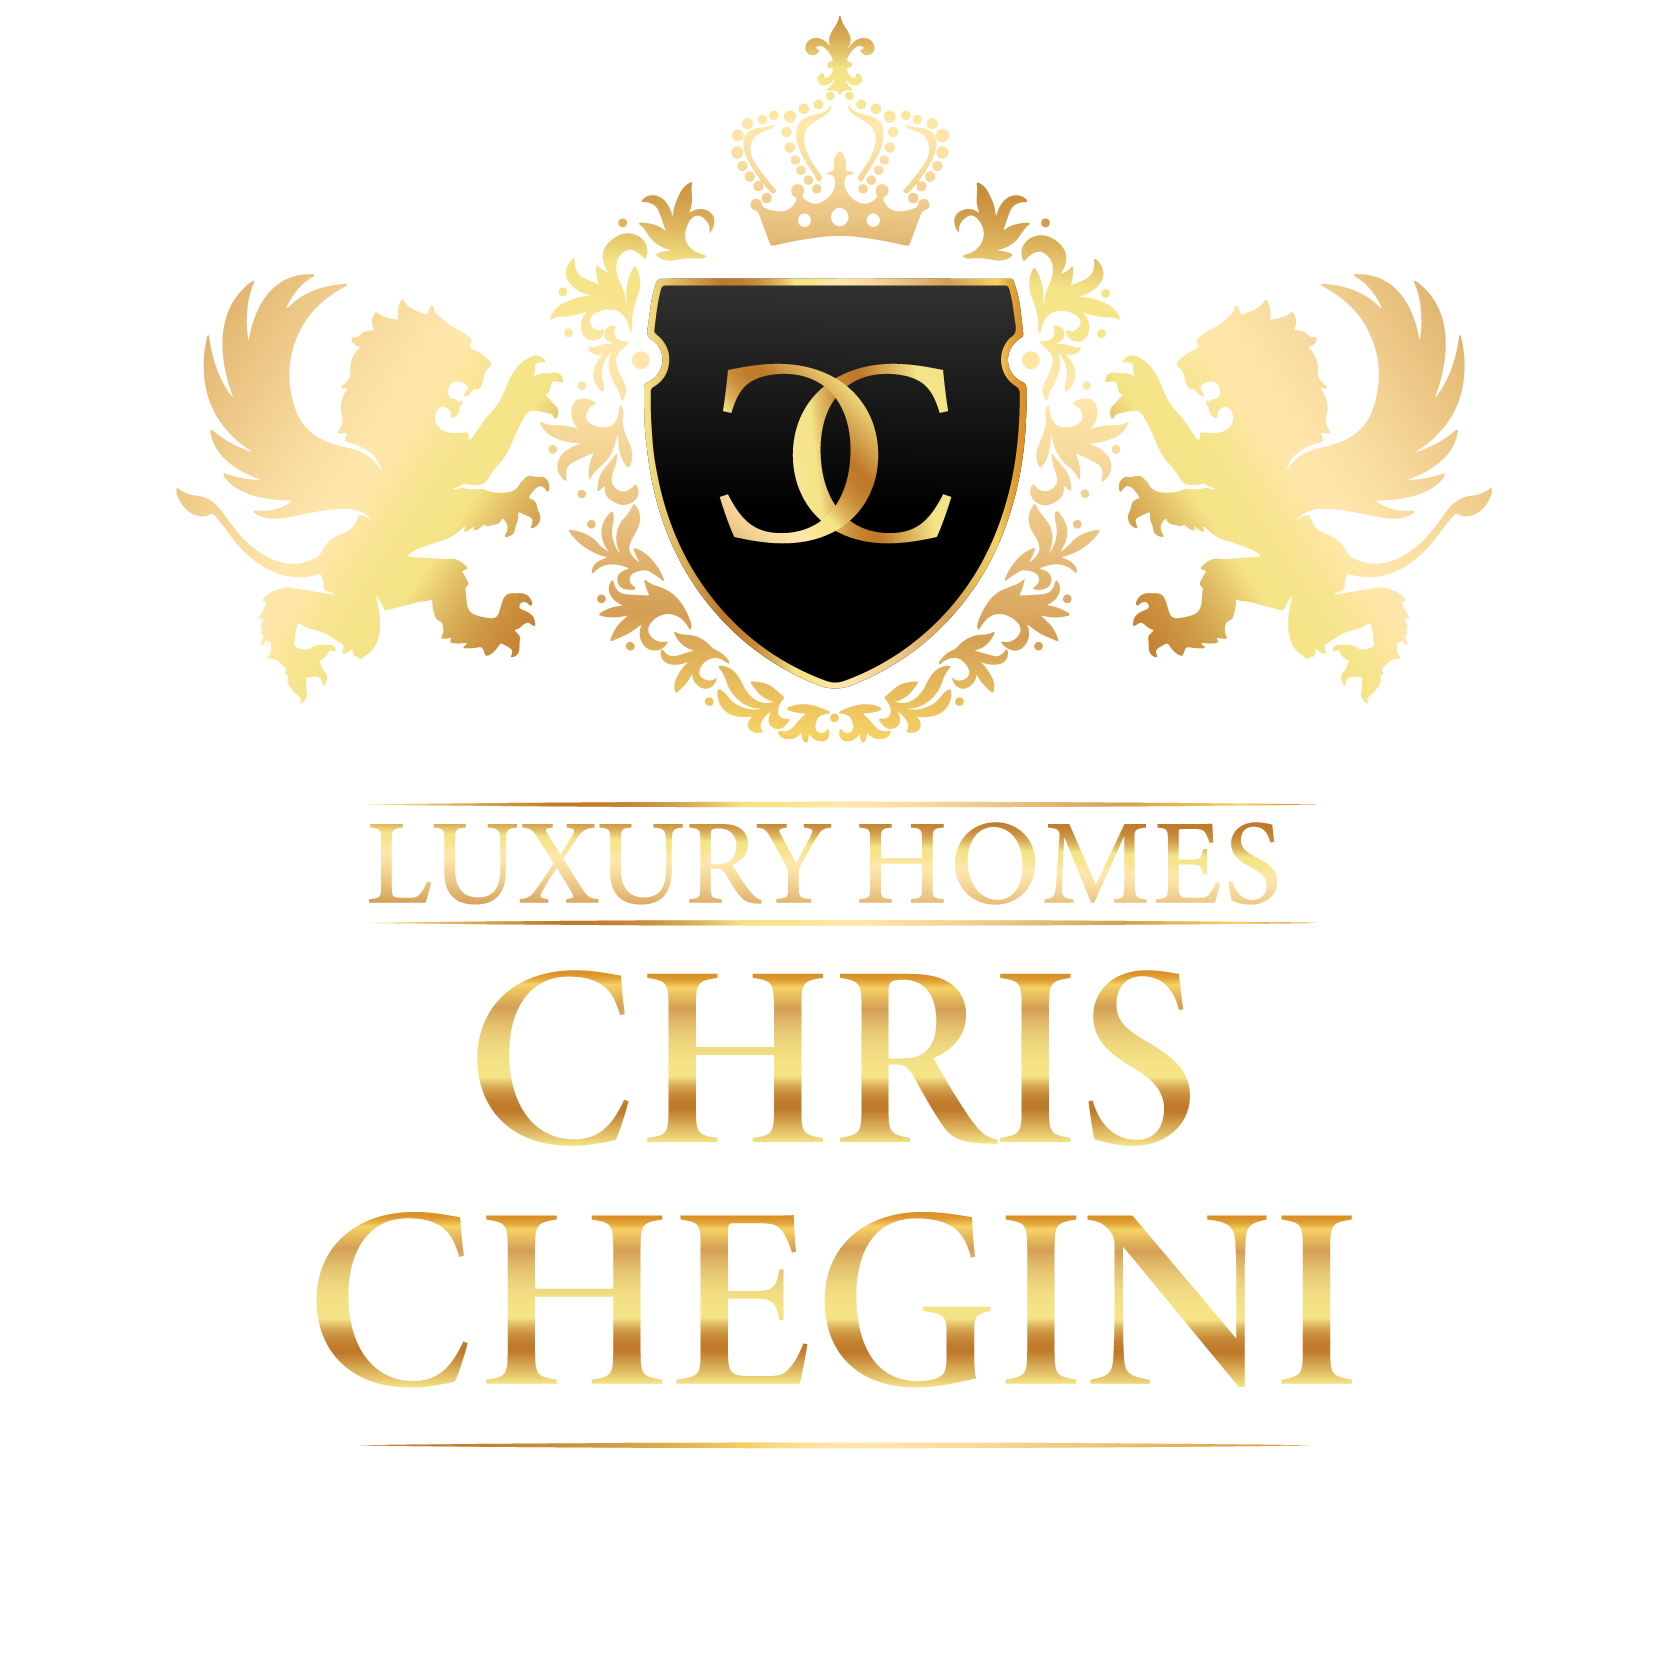 Chris Chegini